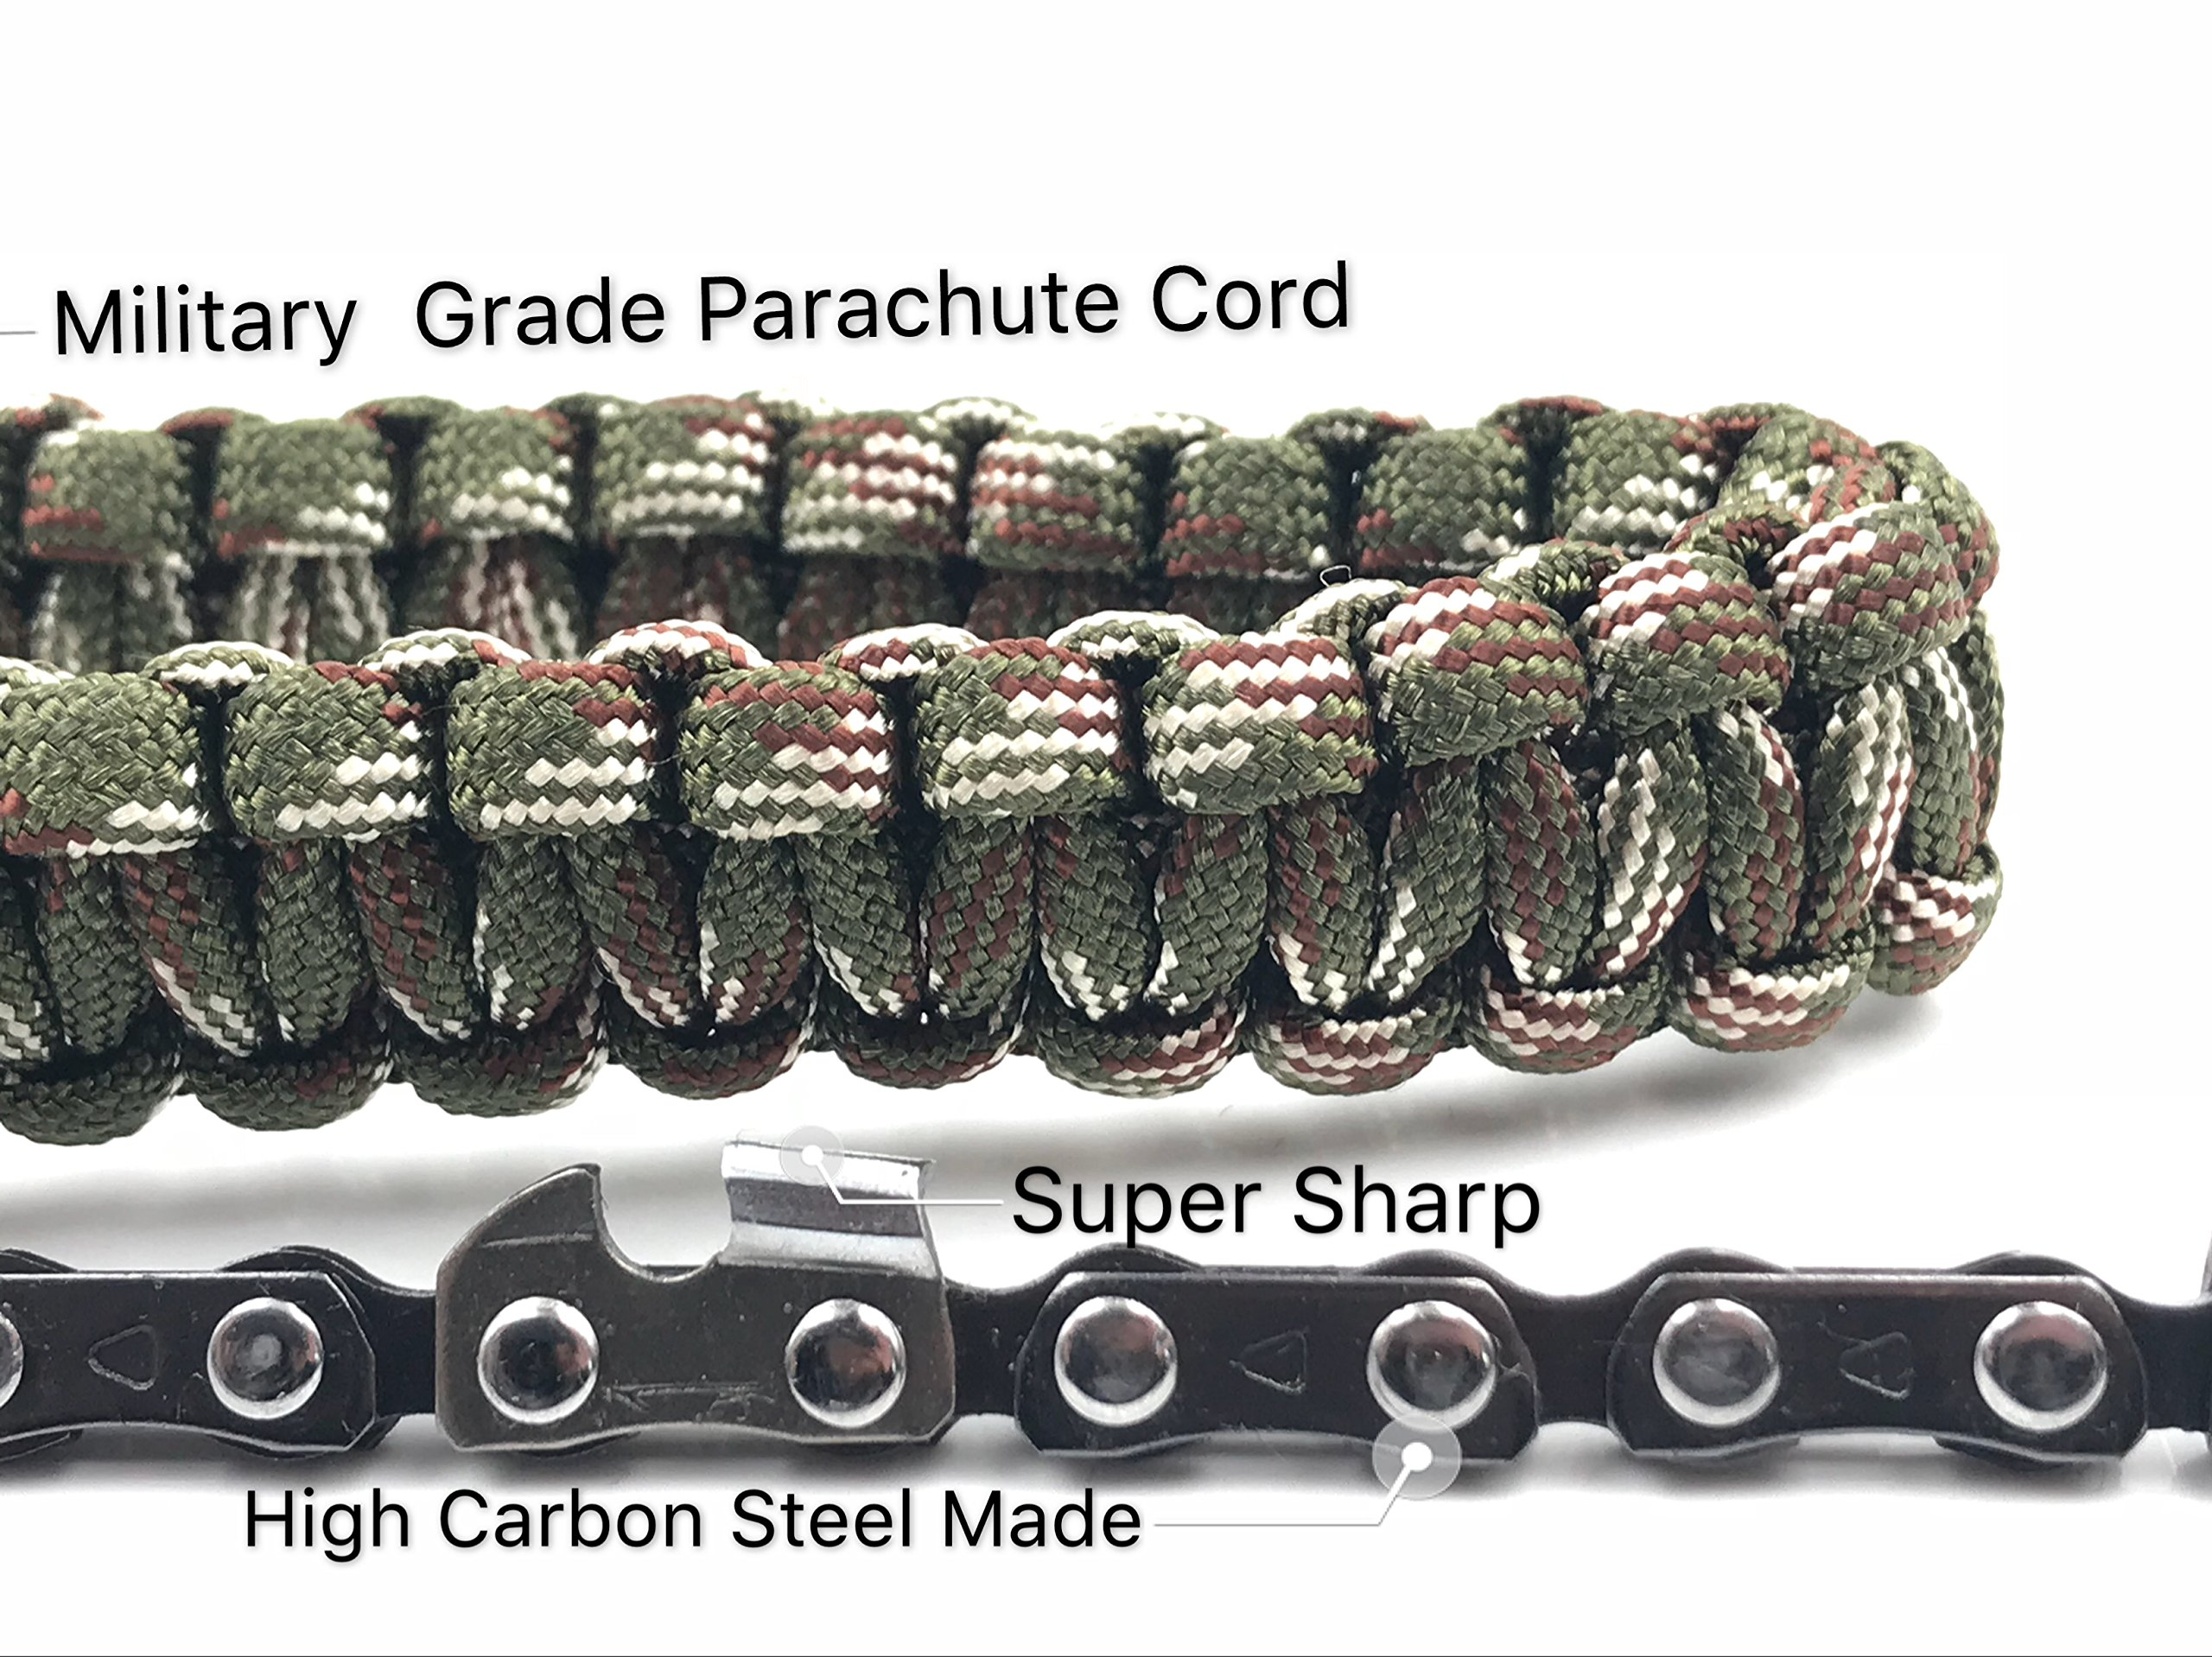 Modernlife Pocket Chainsaw with Paracord Handle 24 inch 11 Teeth Best Compact Folding Hand Saw Tool for Survival Gear, Camping, Hunting, Tree Cutting or Emergency Kit by Modernlife (Image #4)